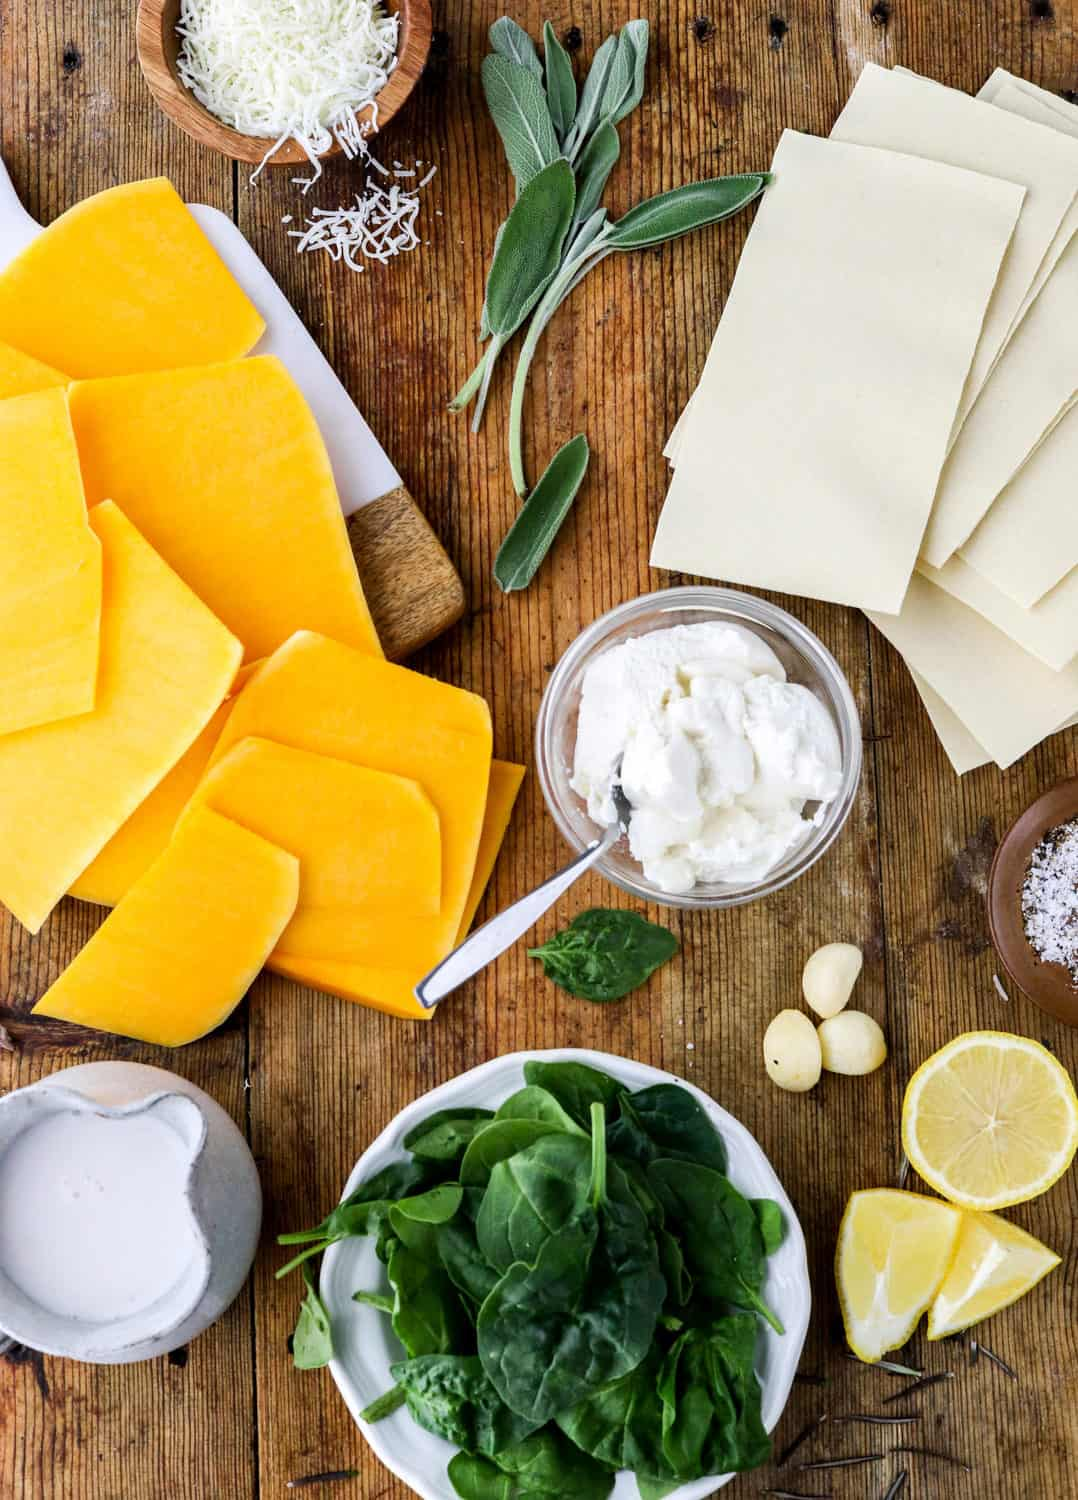 Sliced planks of butternut squash on a wooden board next to fresh sage leaves, bowl of shredded mozzarella, lasagna noodles, bowl of ricotta cheese, plate of spinach, cut lemons and jar of milk all spread out on a wooden board.